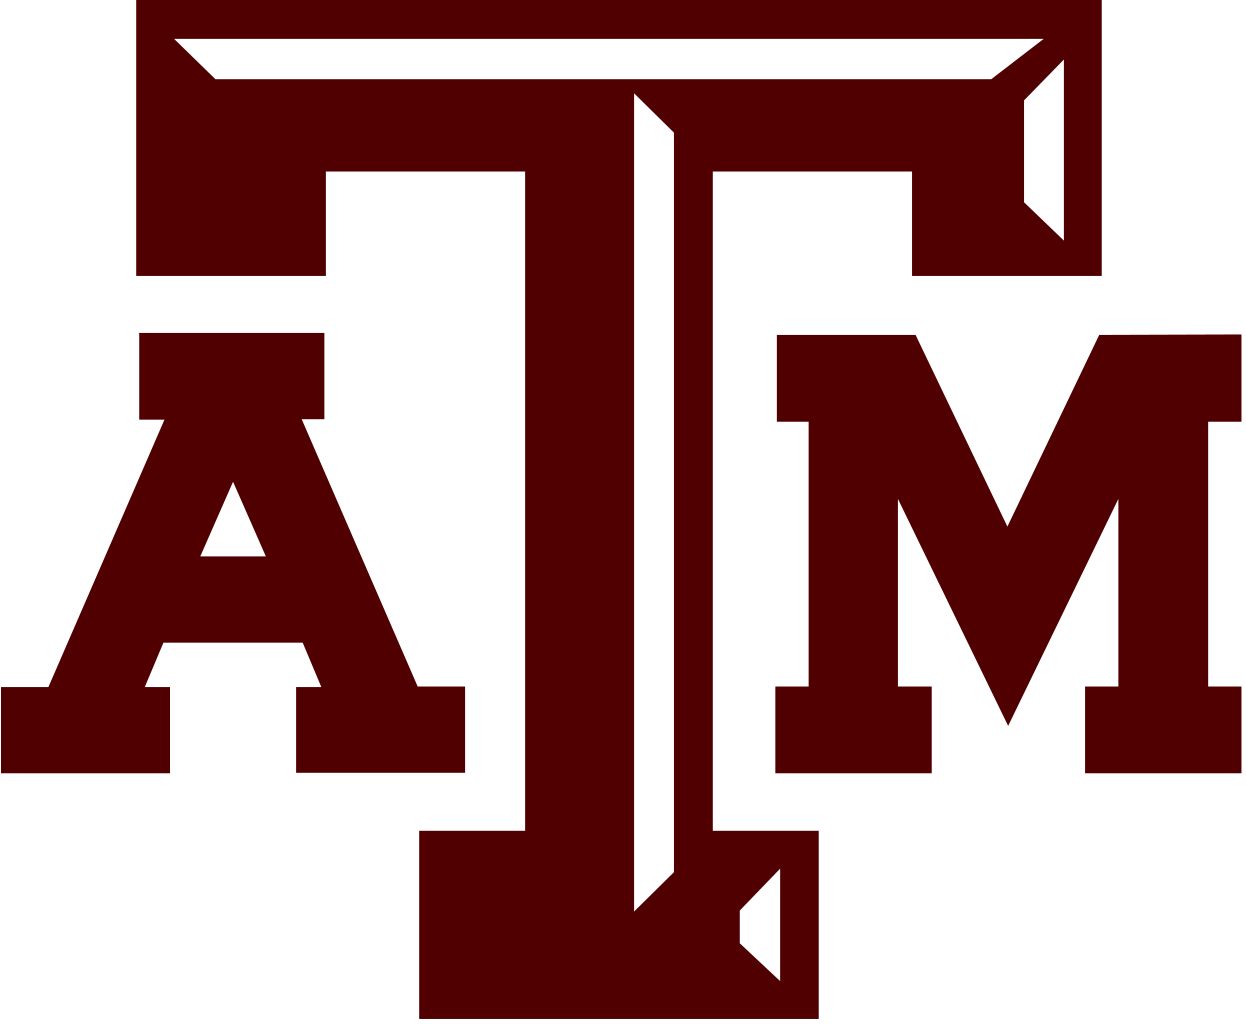 png freeuse download File a m university. Texas a&m clipart